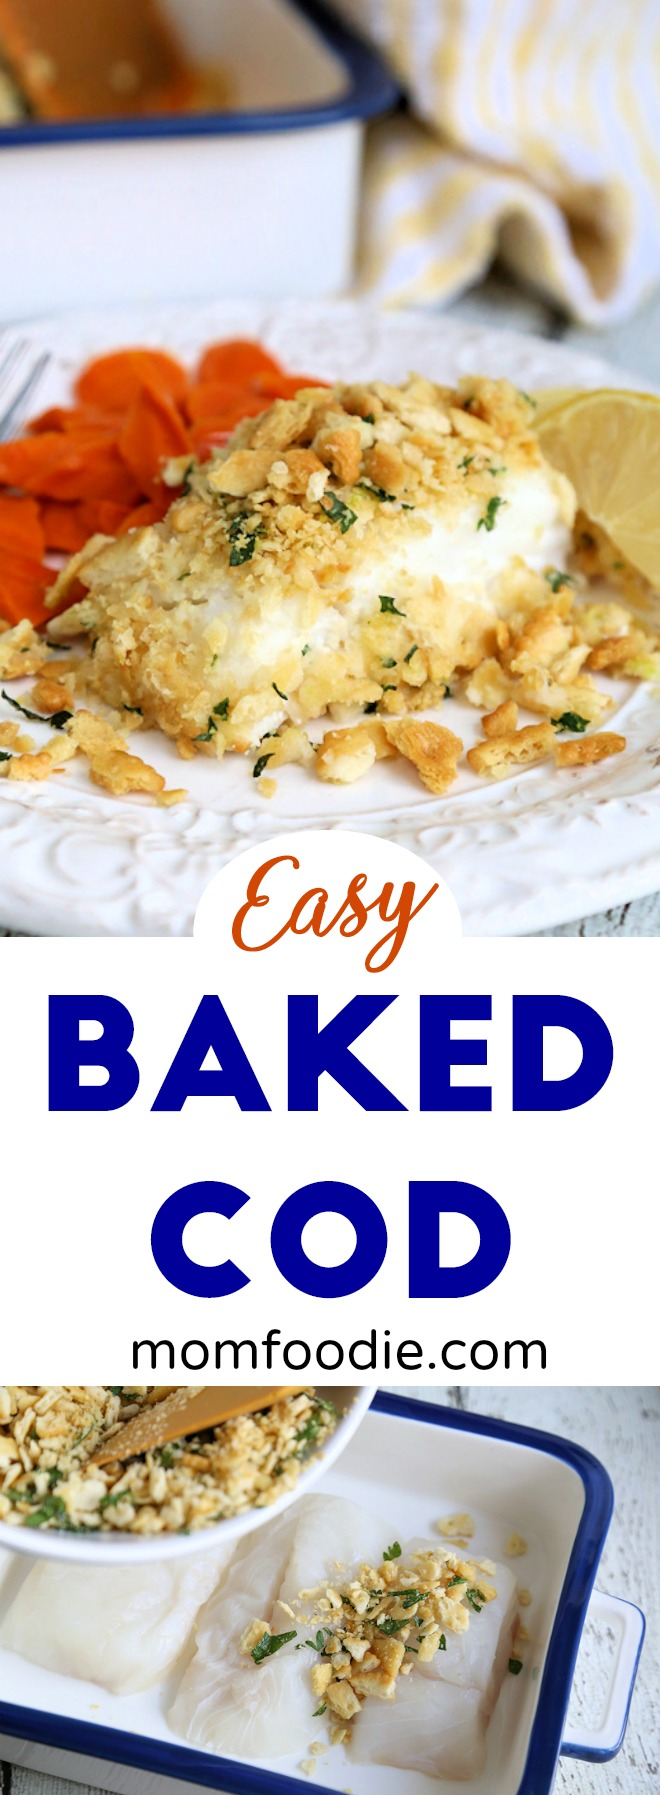 Easy baked cod recipe with ritz cracker topping mom foodie for Easy cod fish recipes